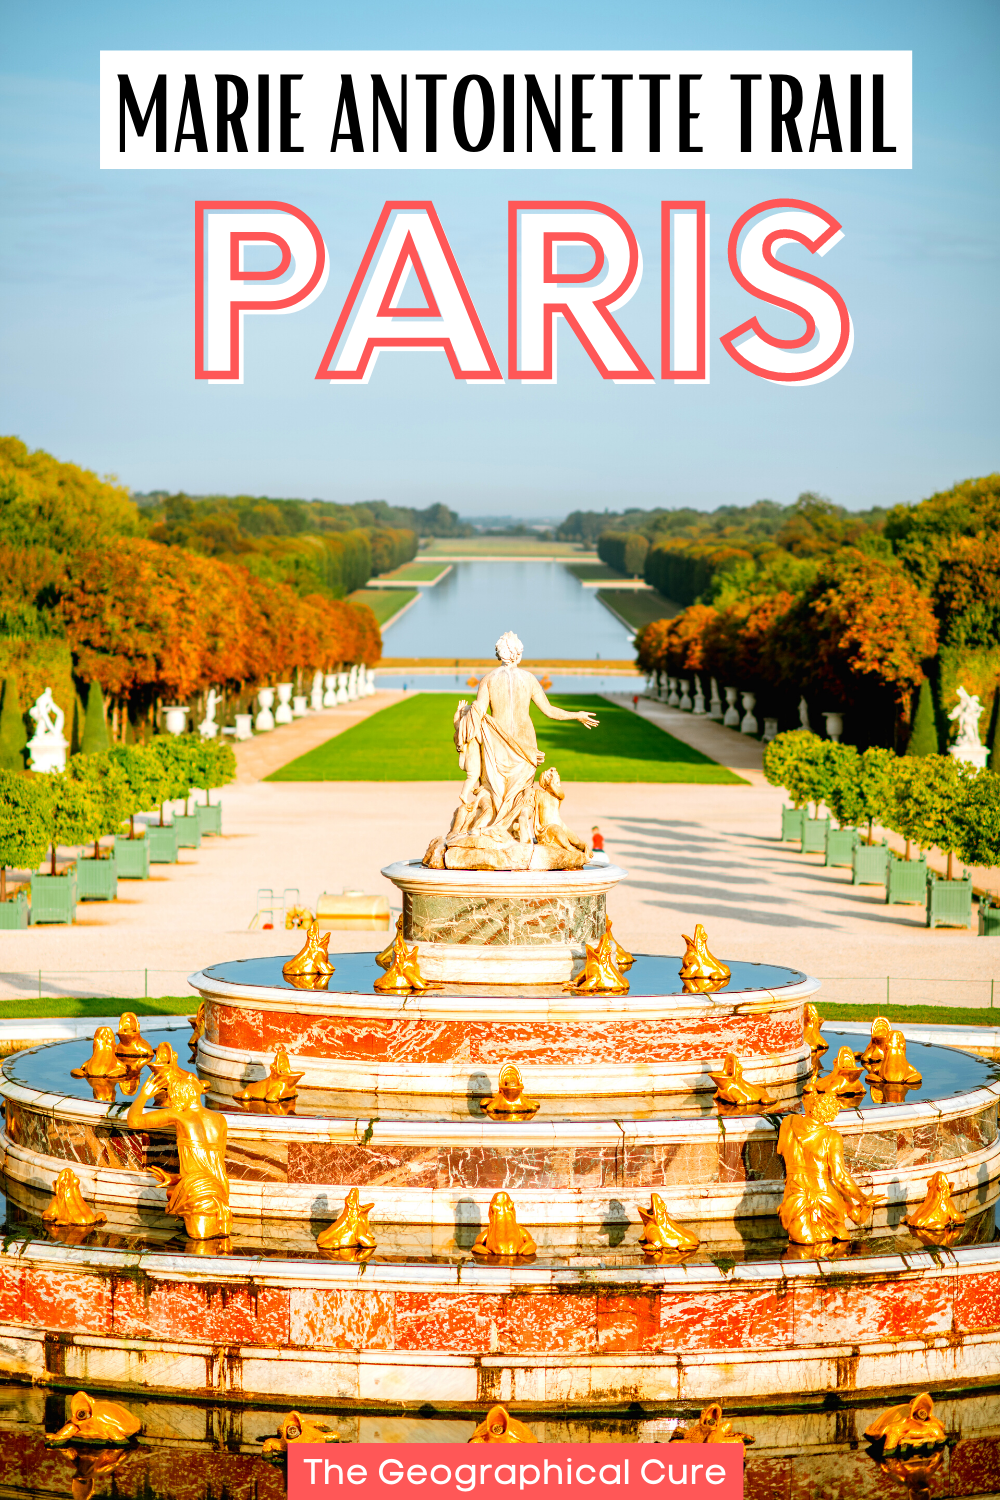 guide to the Marie Antoinette attractions and sites in Paris France